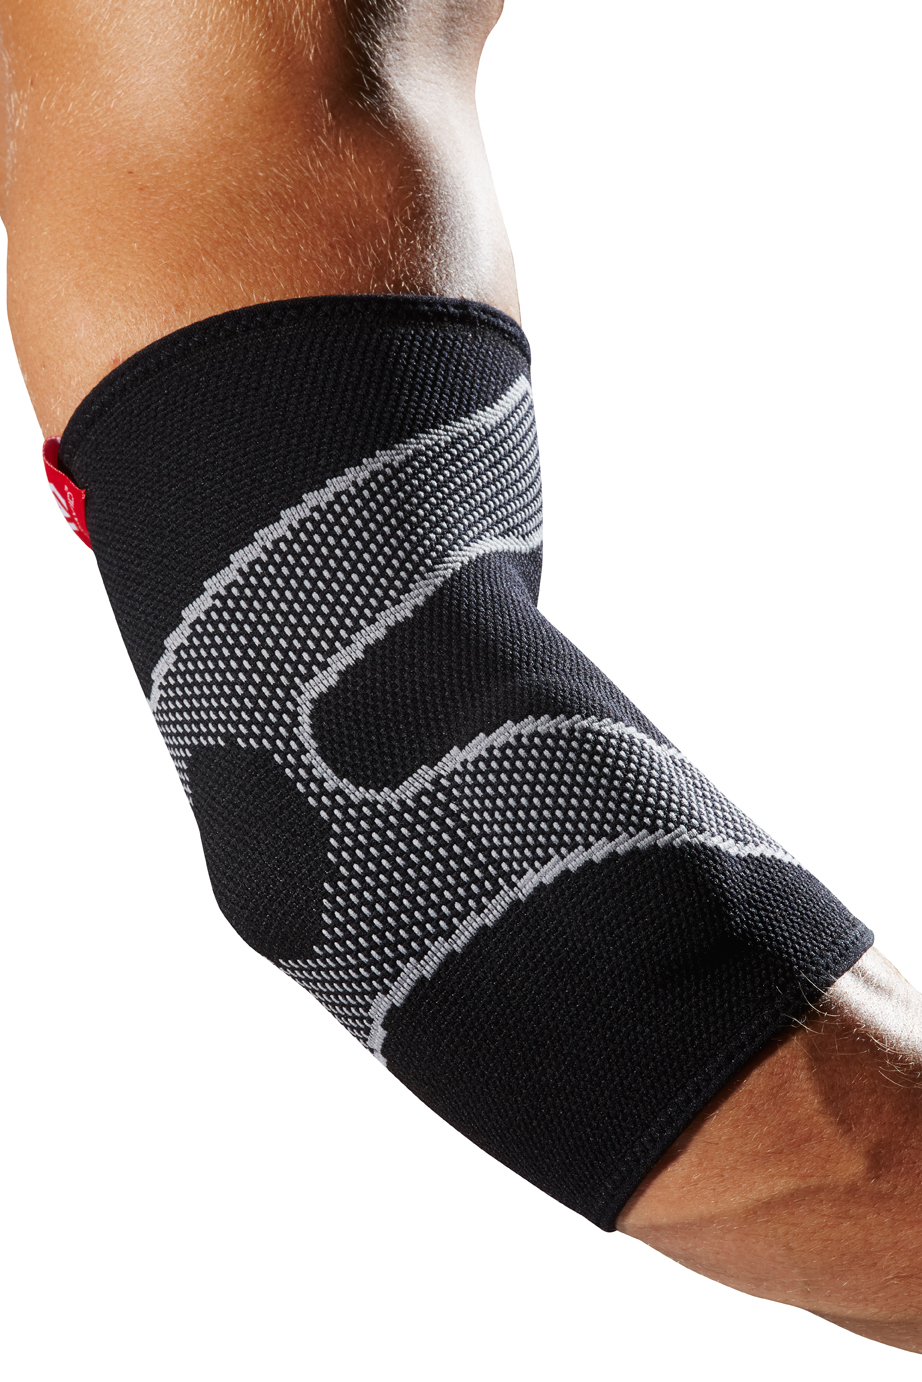 Elbow Sleeve - McDavid